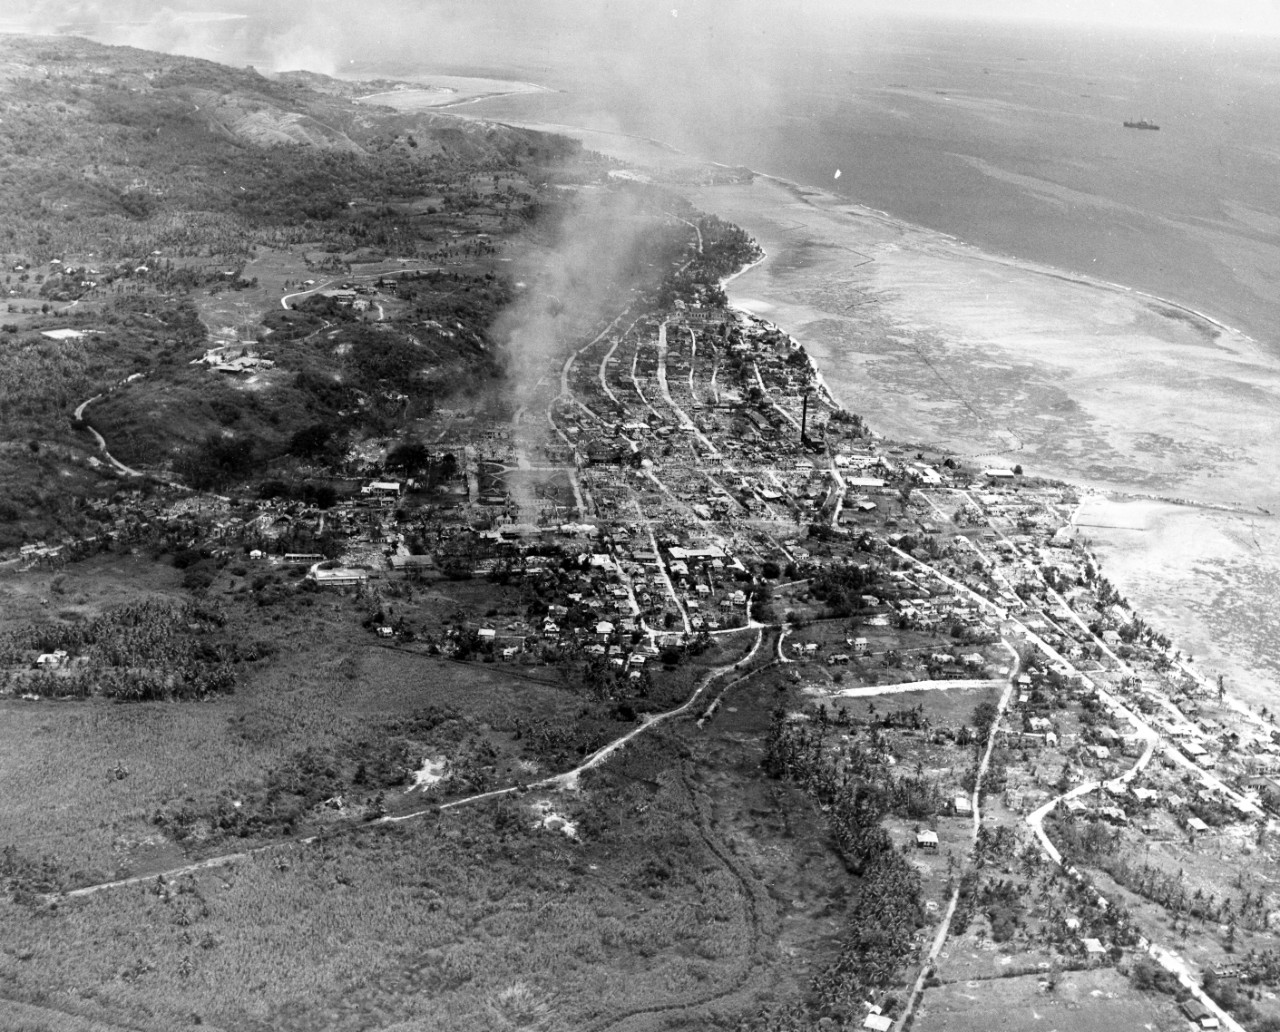 Aerial view of Agana, Guam. Photo taken by plane from USS Yorktown (CV-10). September 5, 1944. Image is from the CAPT Hays R. Browning Photo Collection.